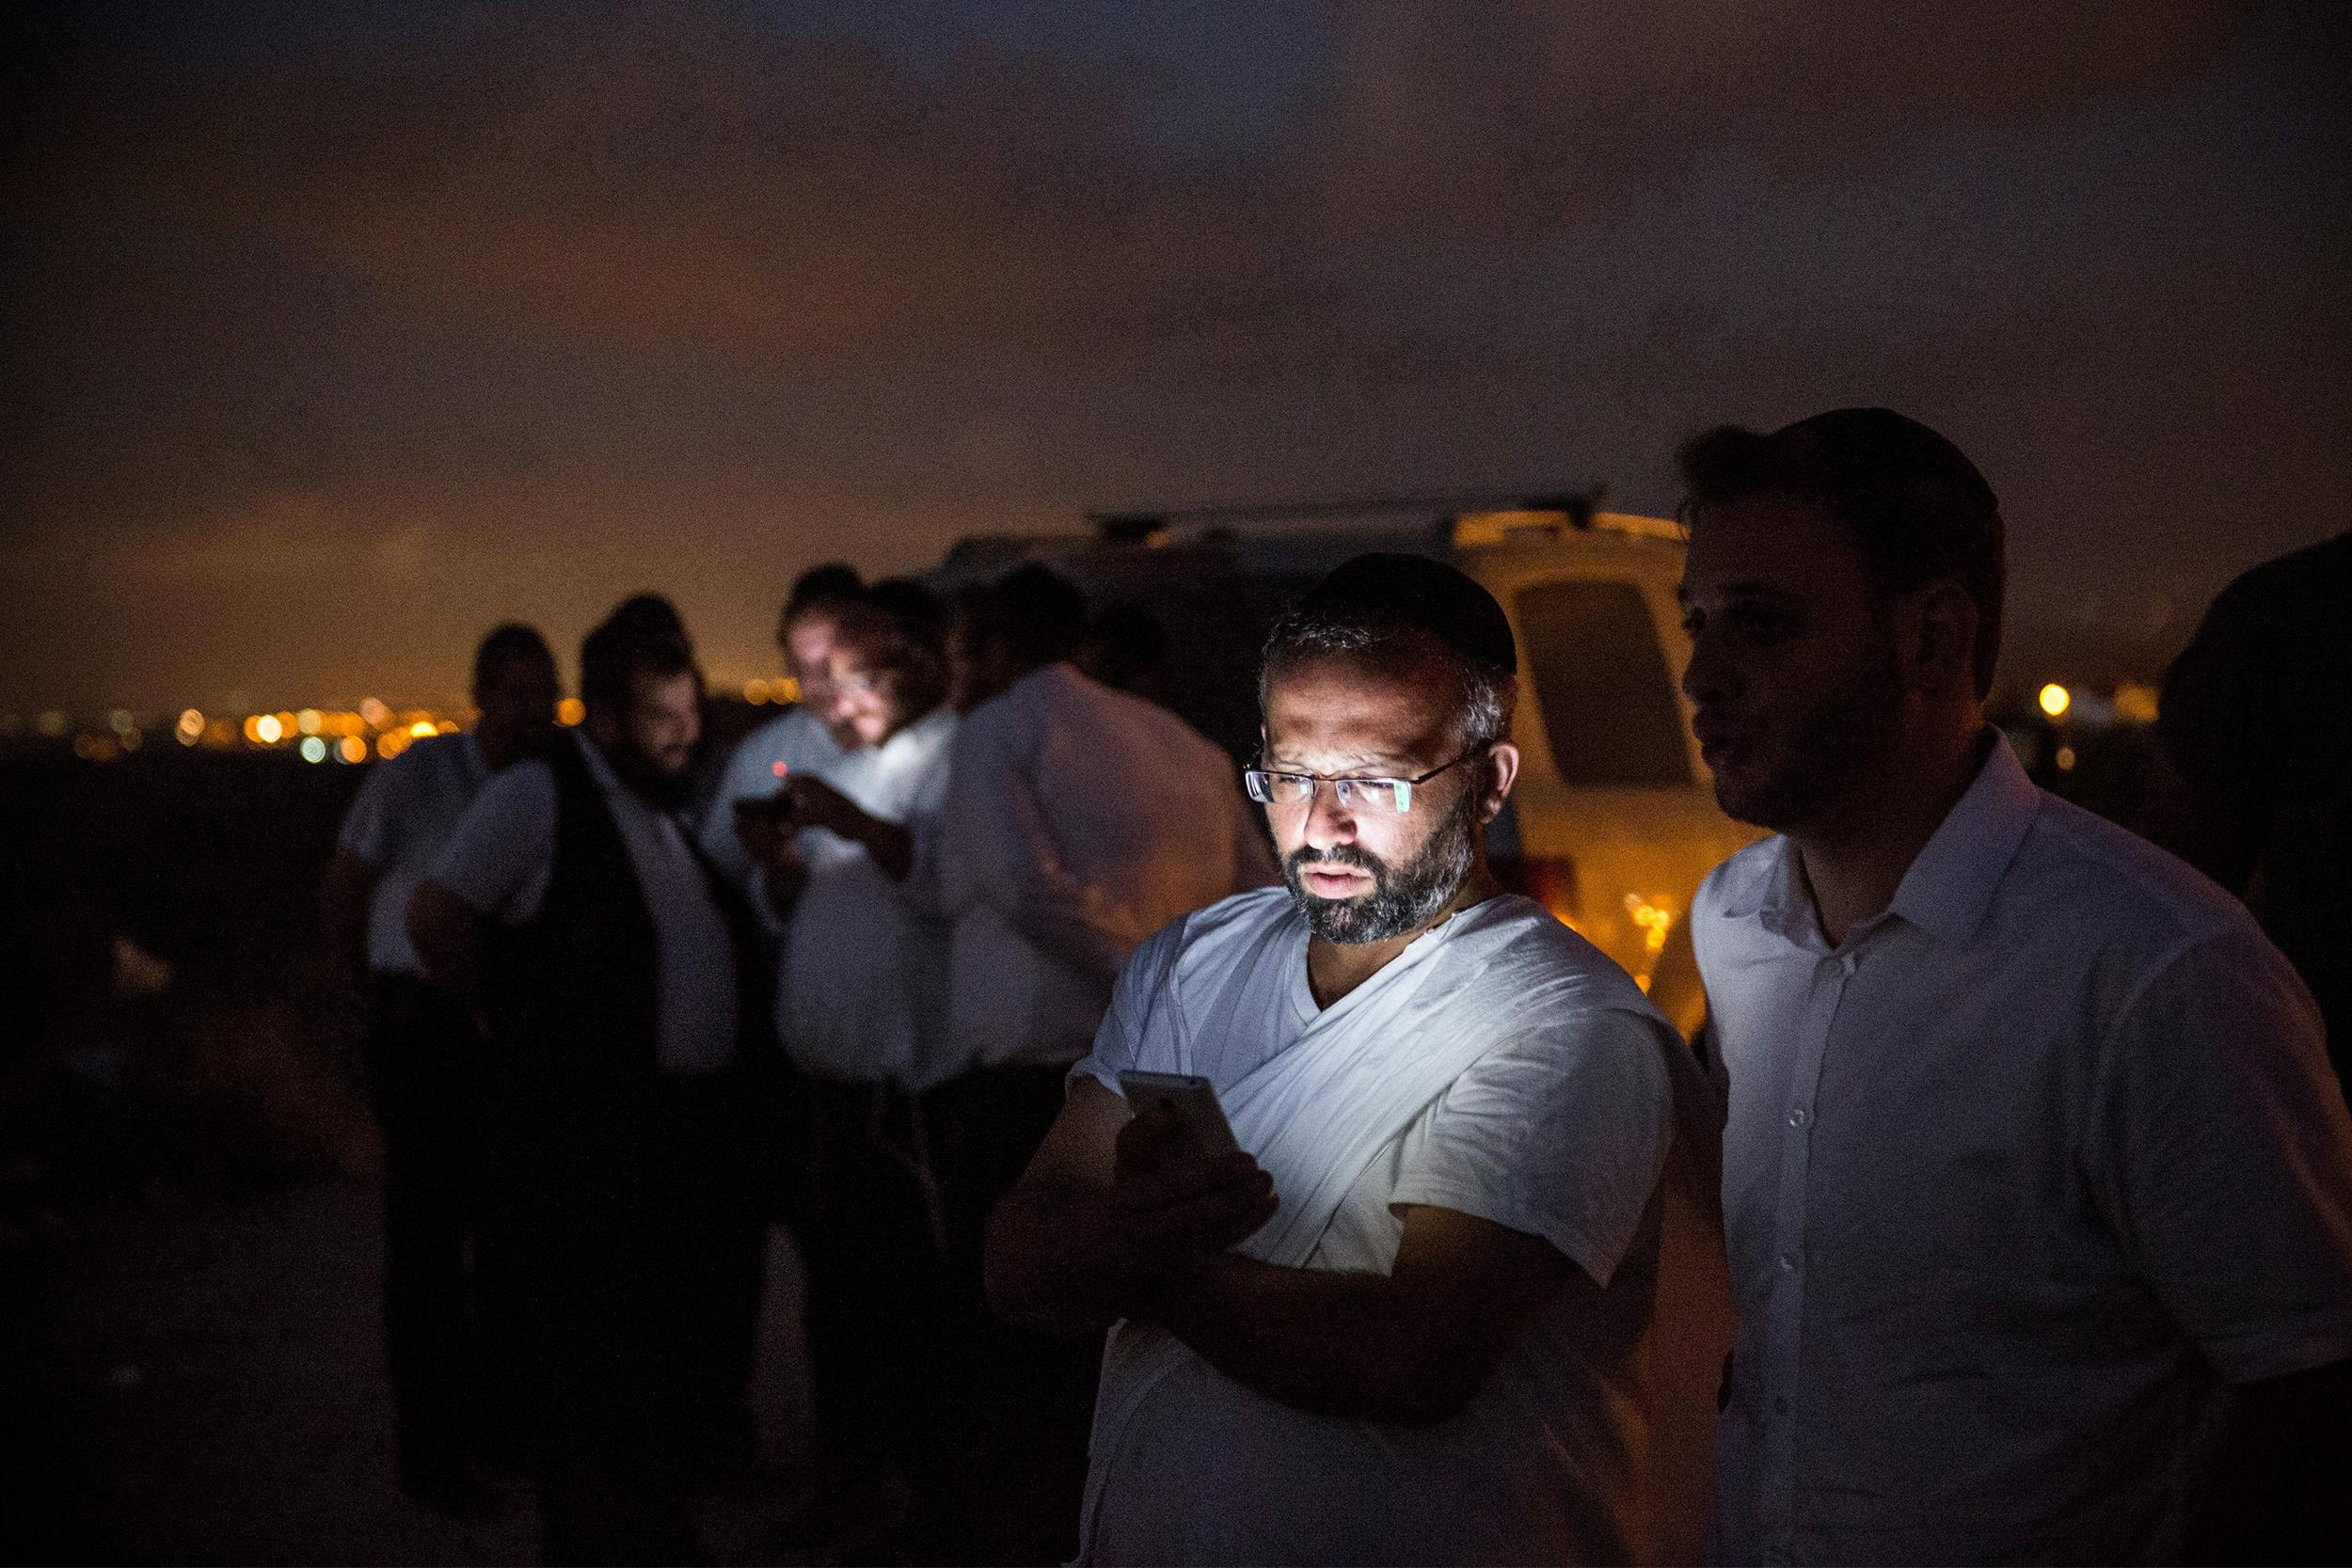 Image: Israelis check their cellphones while waiting for outgoing rocket fire or Israeli airstrikes from a hill overlooking the Gaza Strip